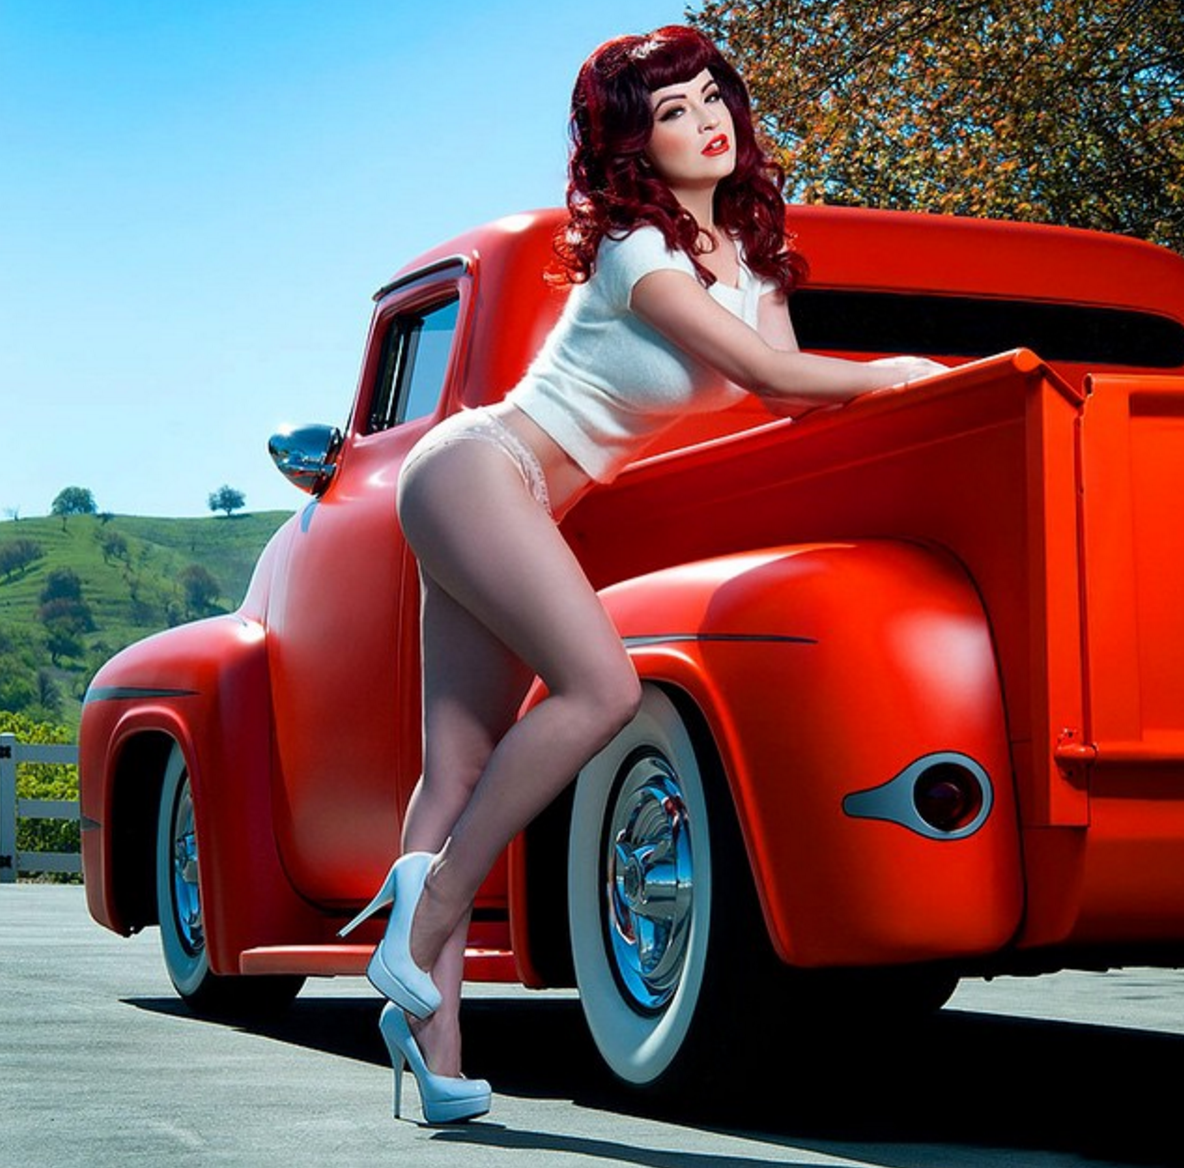 Foursome ends hotrod pinup nude